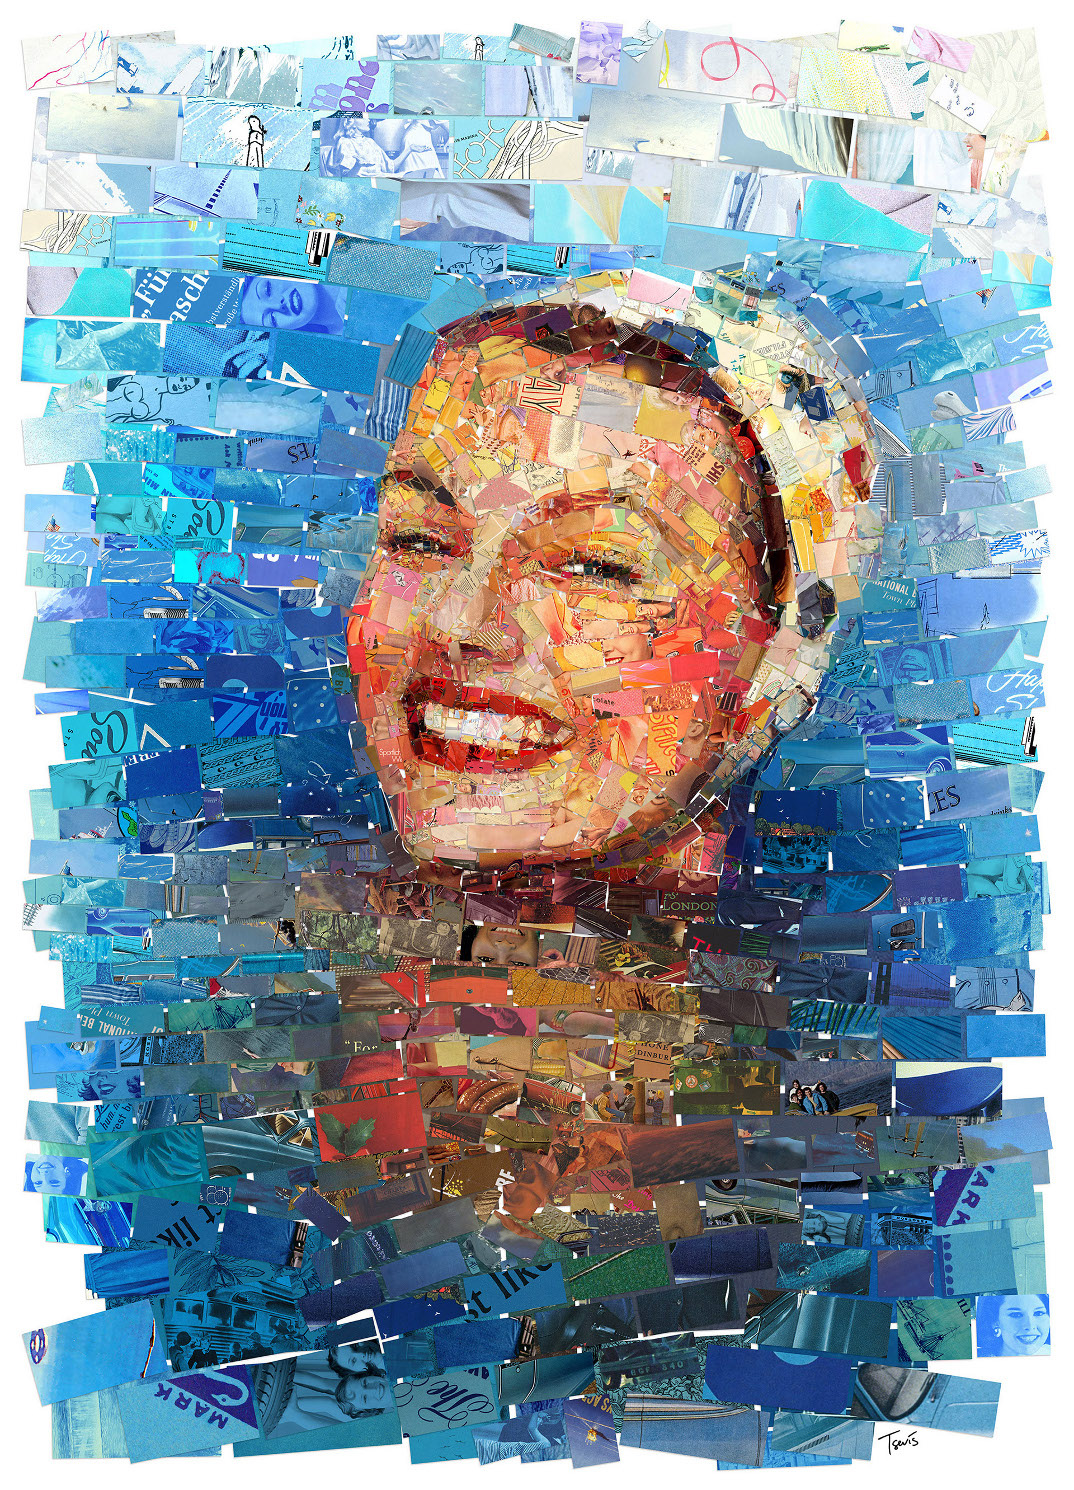 mosaici-collage-riviste-anni-50-60-endless-summer-charis-tsevis-07